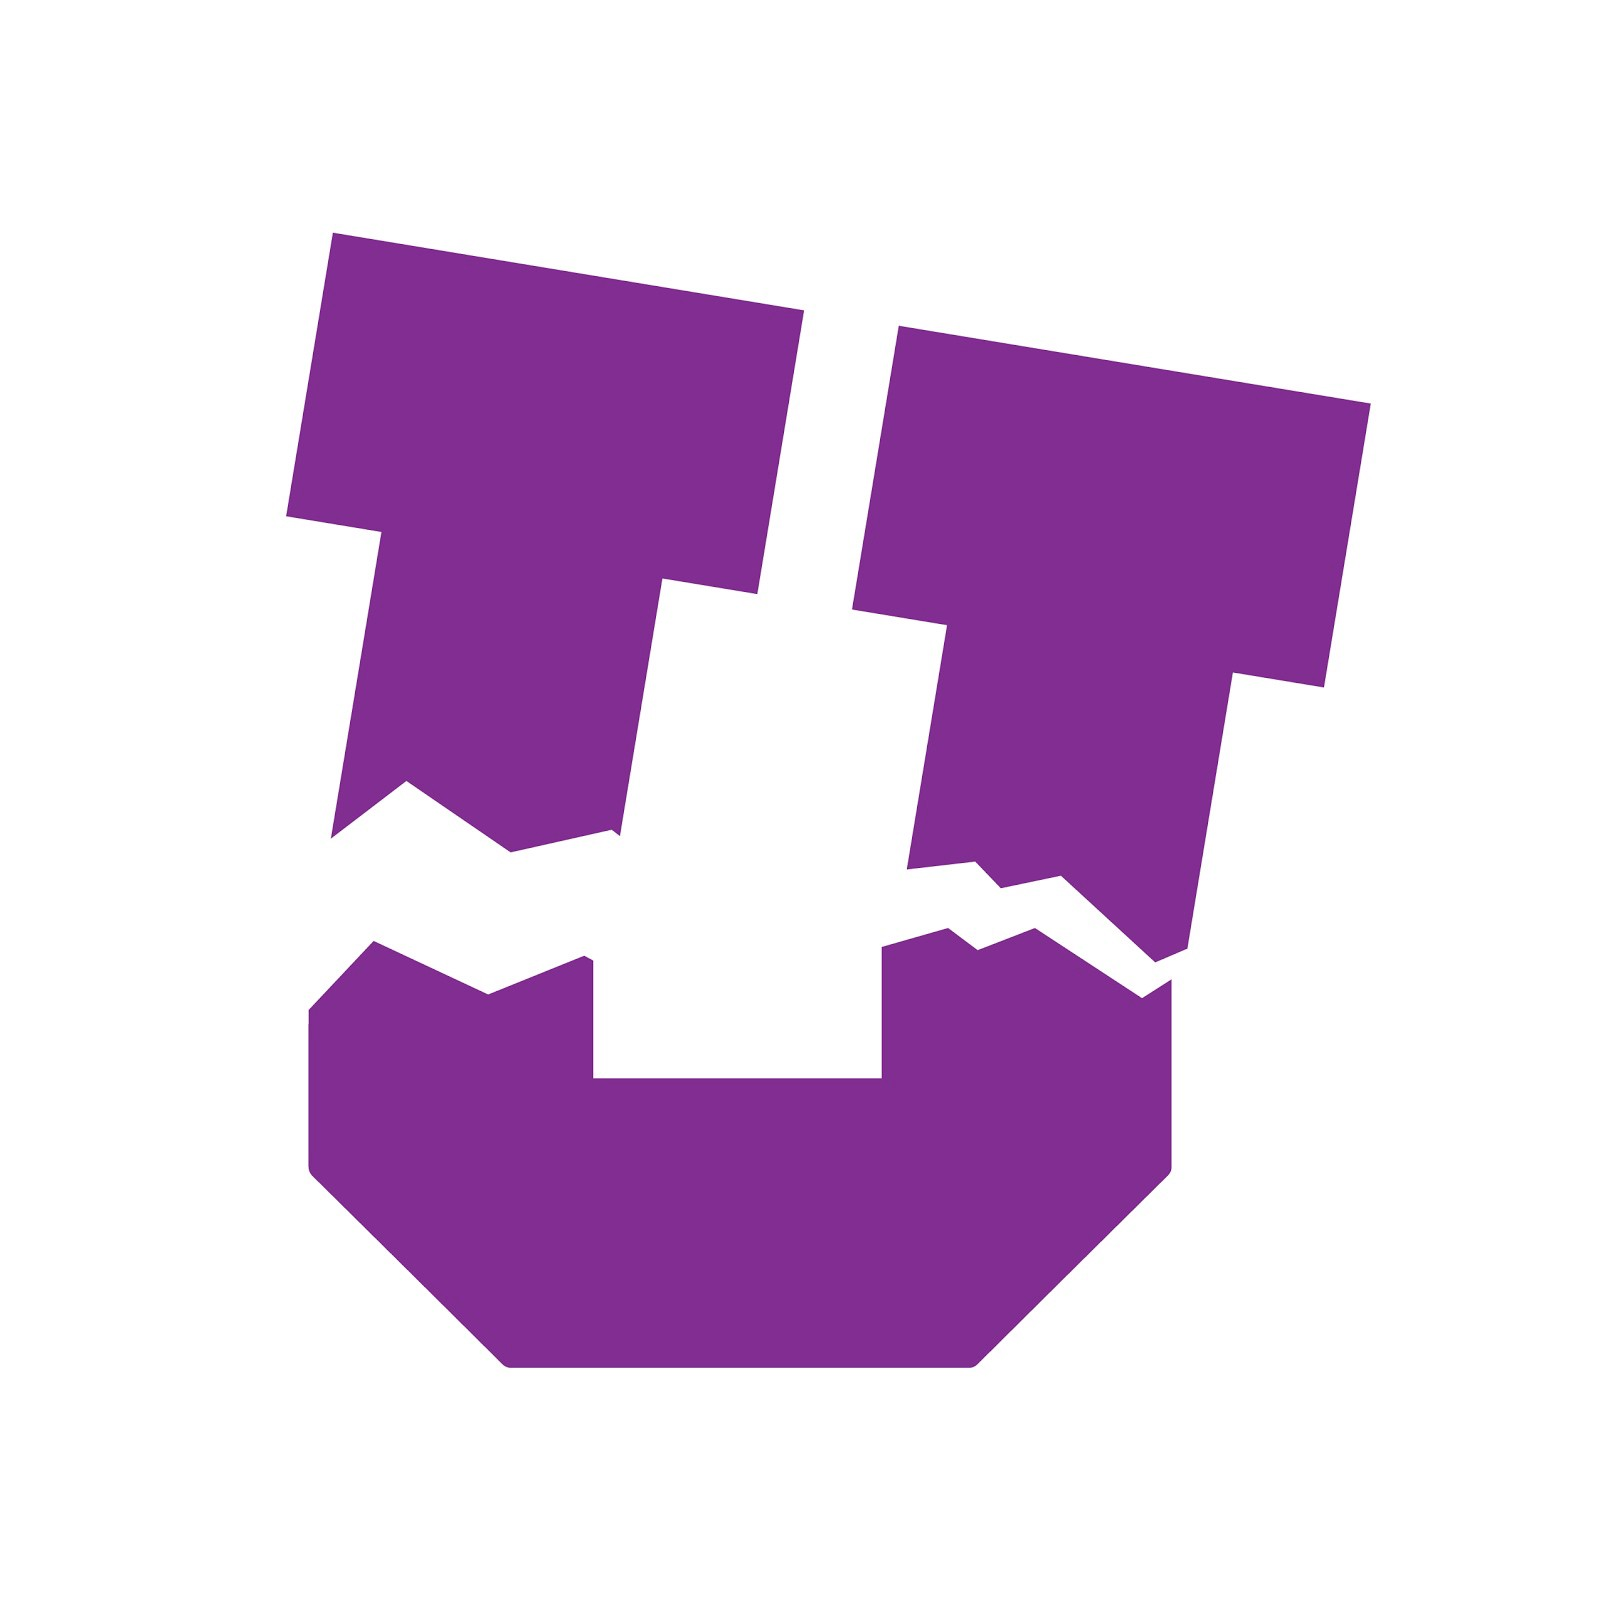 the Broke U logo (a satirical edit of the block u logo: color changed to purple, broken at the stems)